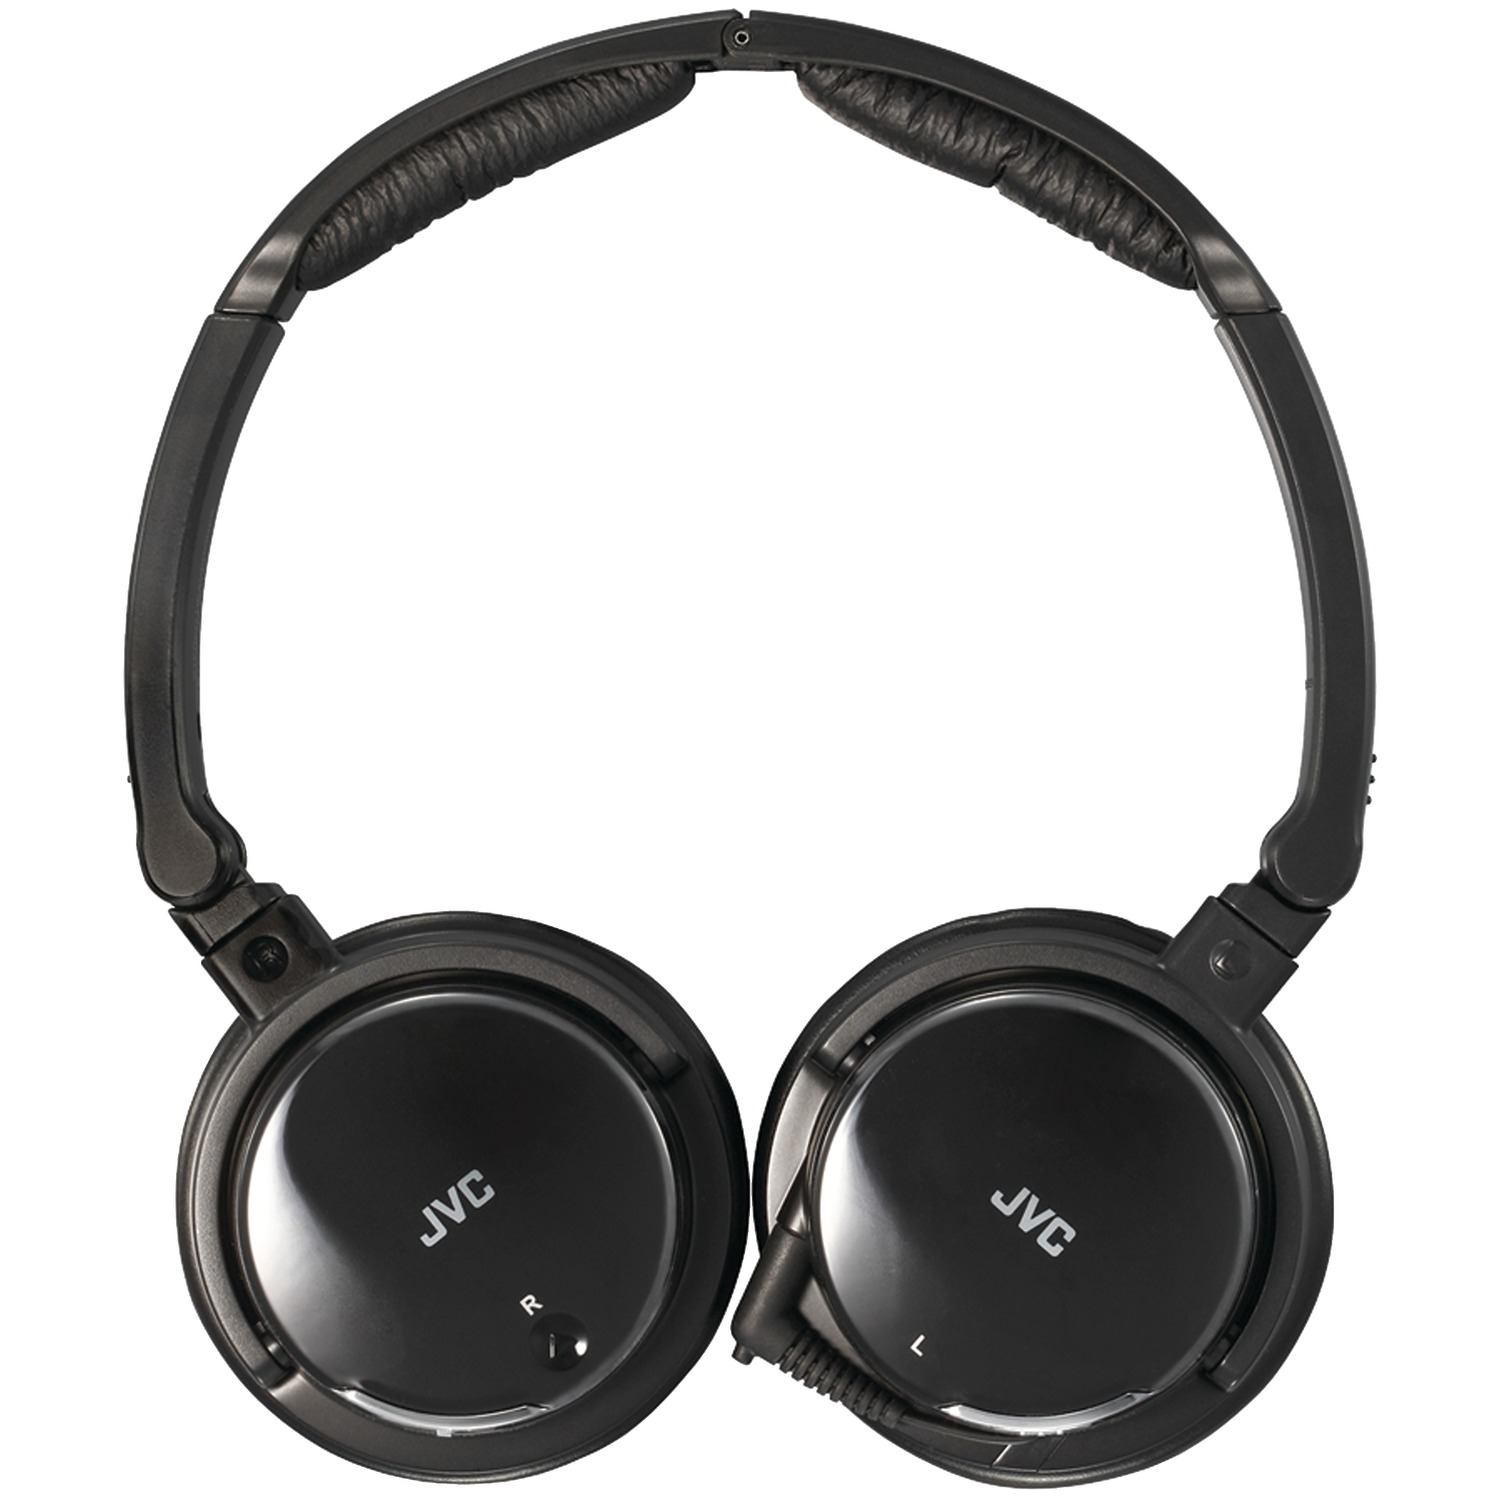 Jvc earbuds ha-et - in ear earbuds sound cancelling